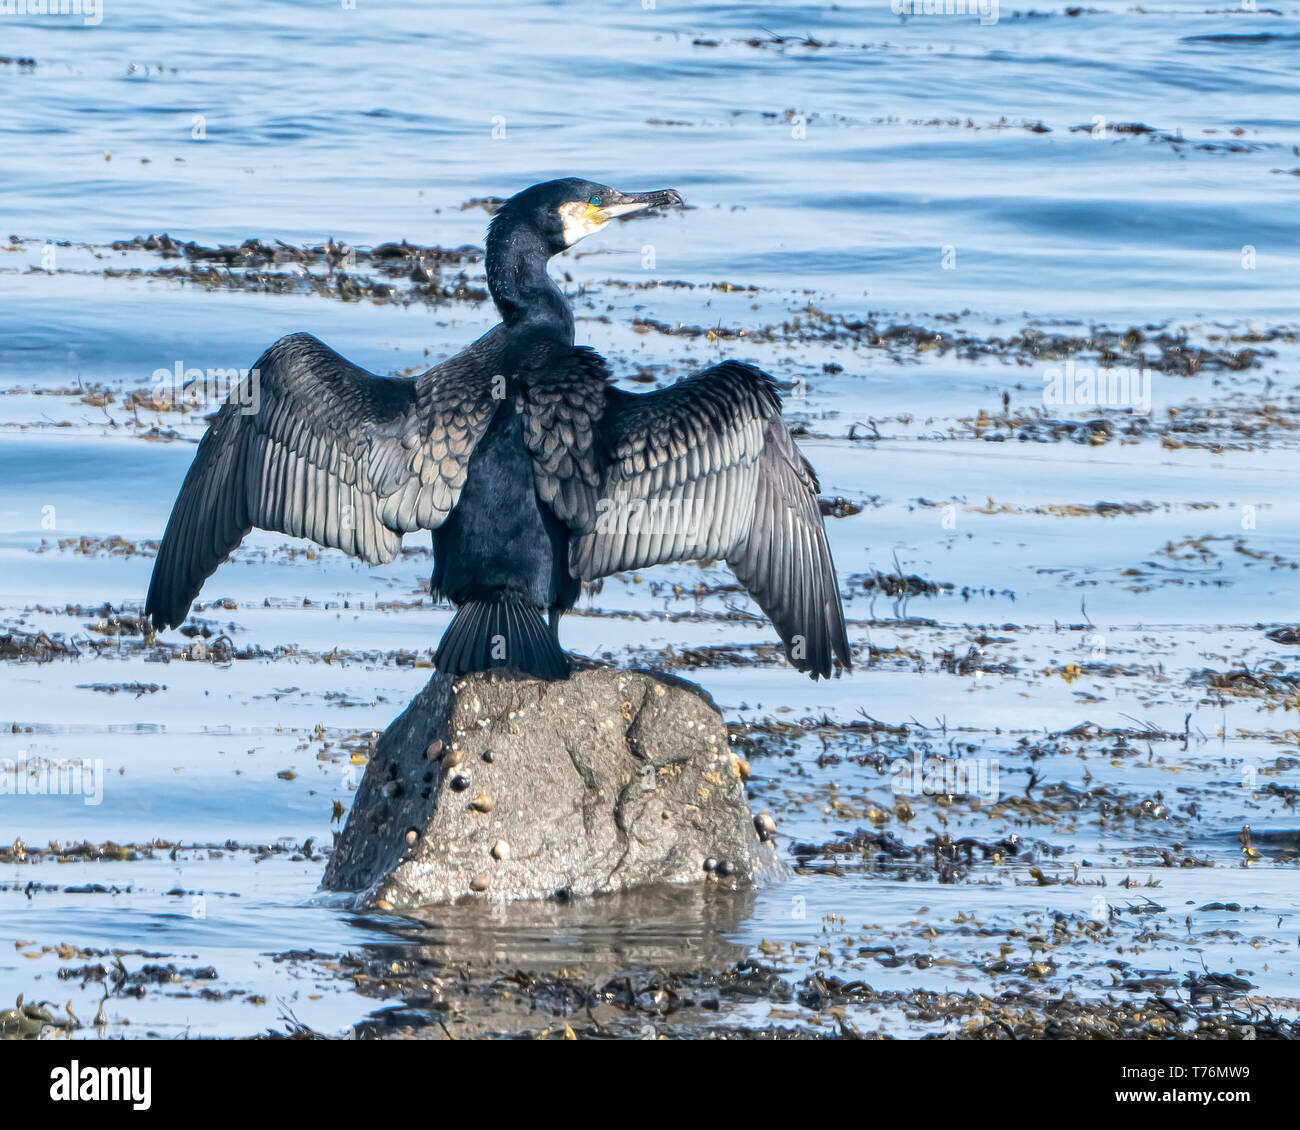 Cormorant  Drying out siting on a rock - Stock Image